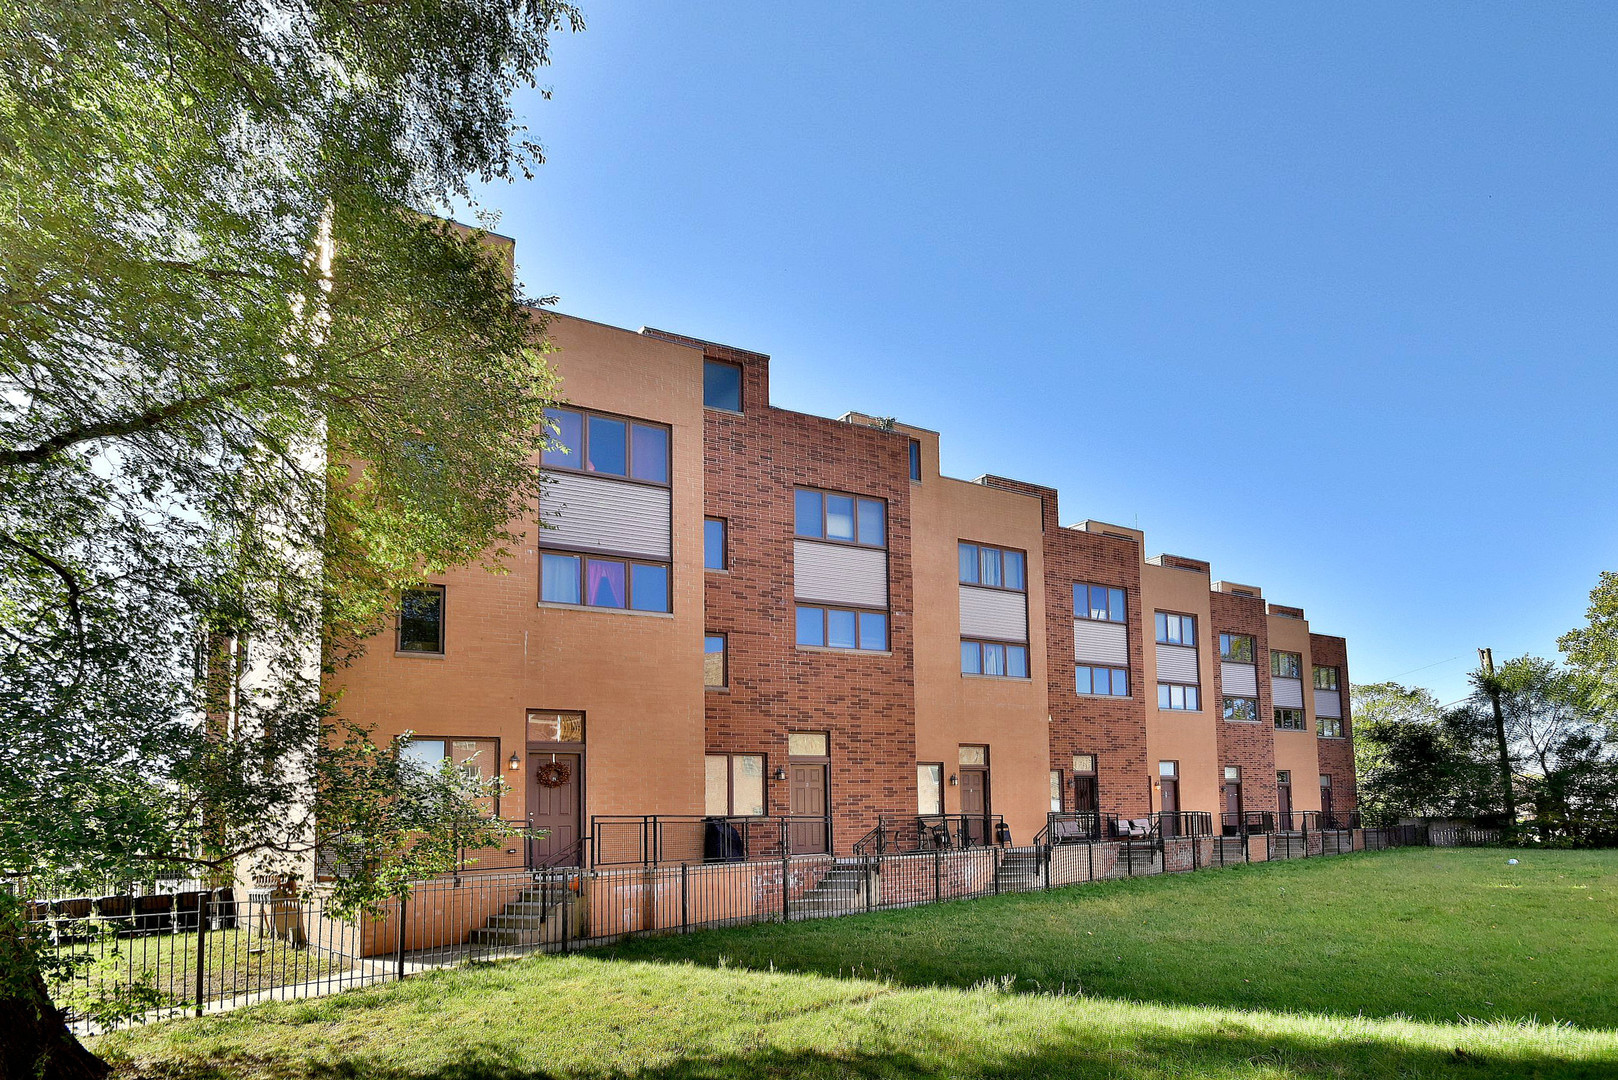 South King Dr., Chicago, IL 60615